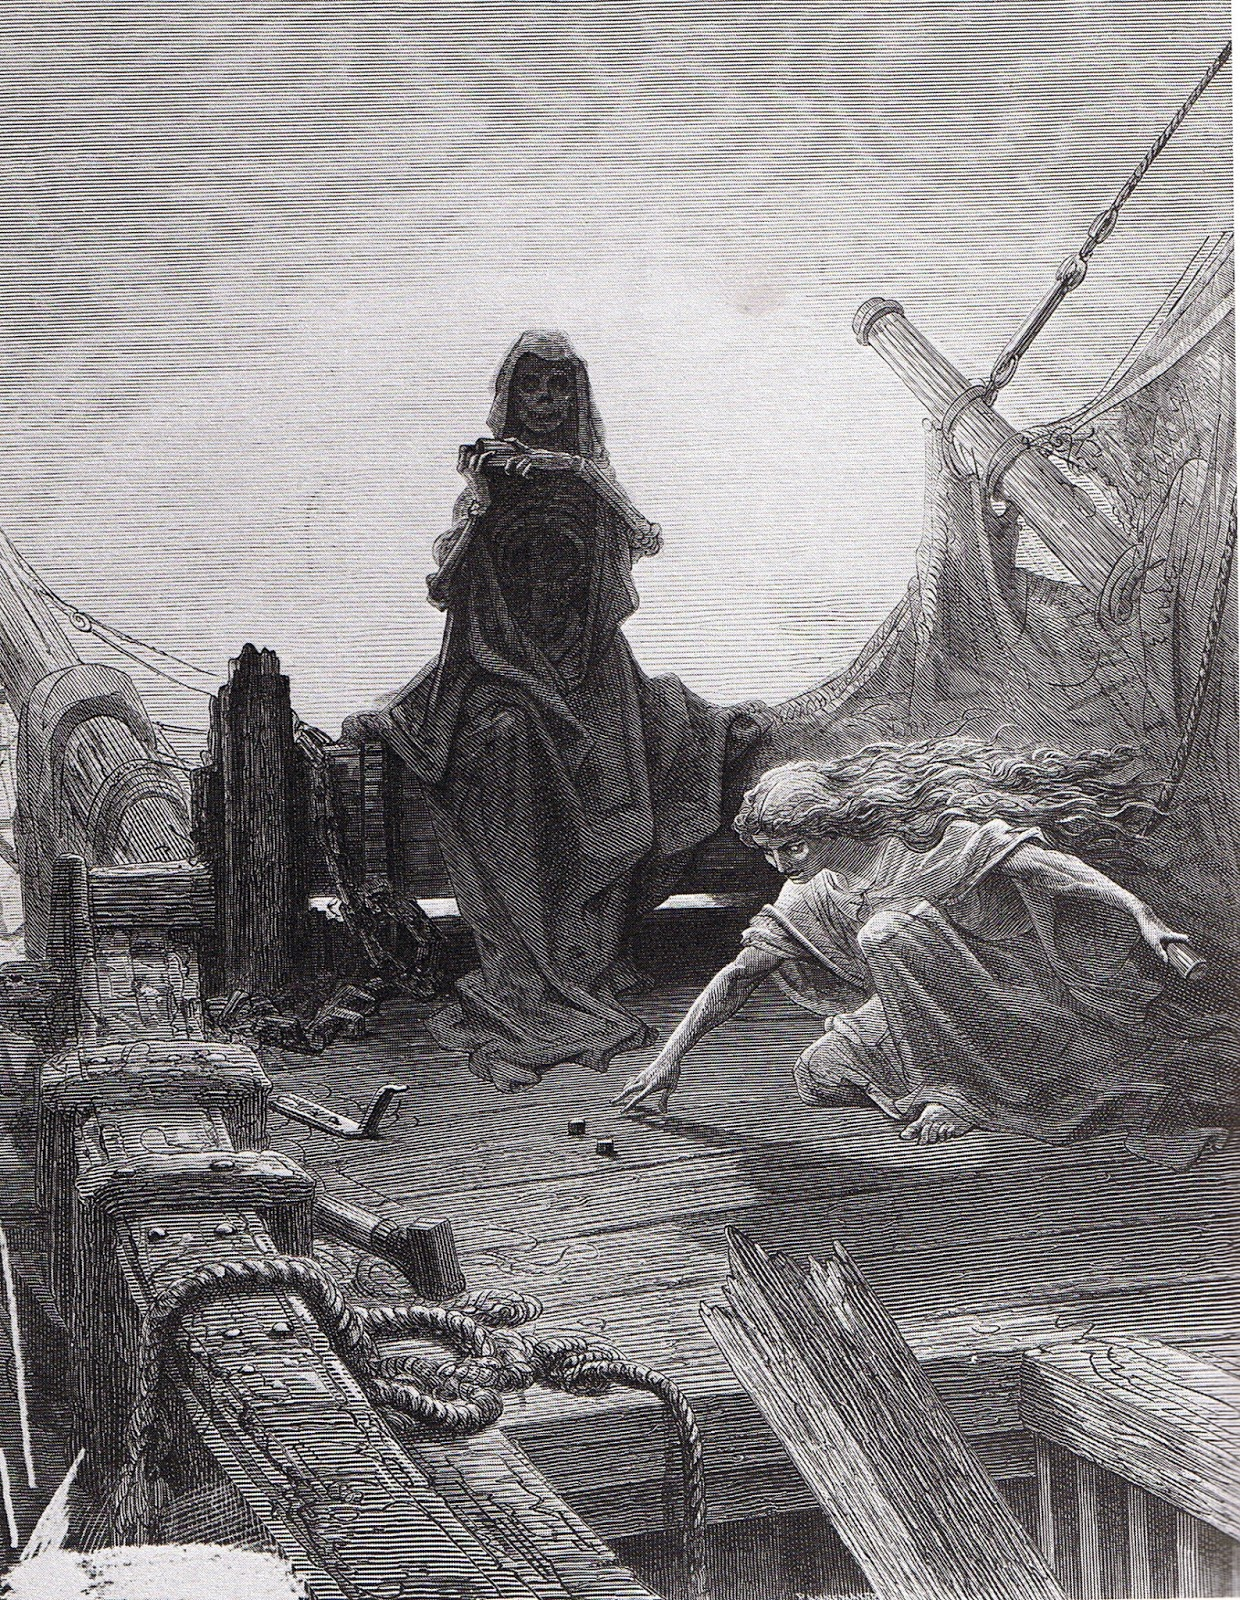 Part III: The Rime of The Ancient Mariner by S.T. Coleridge